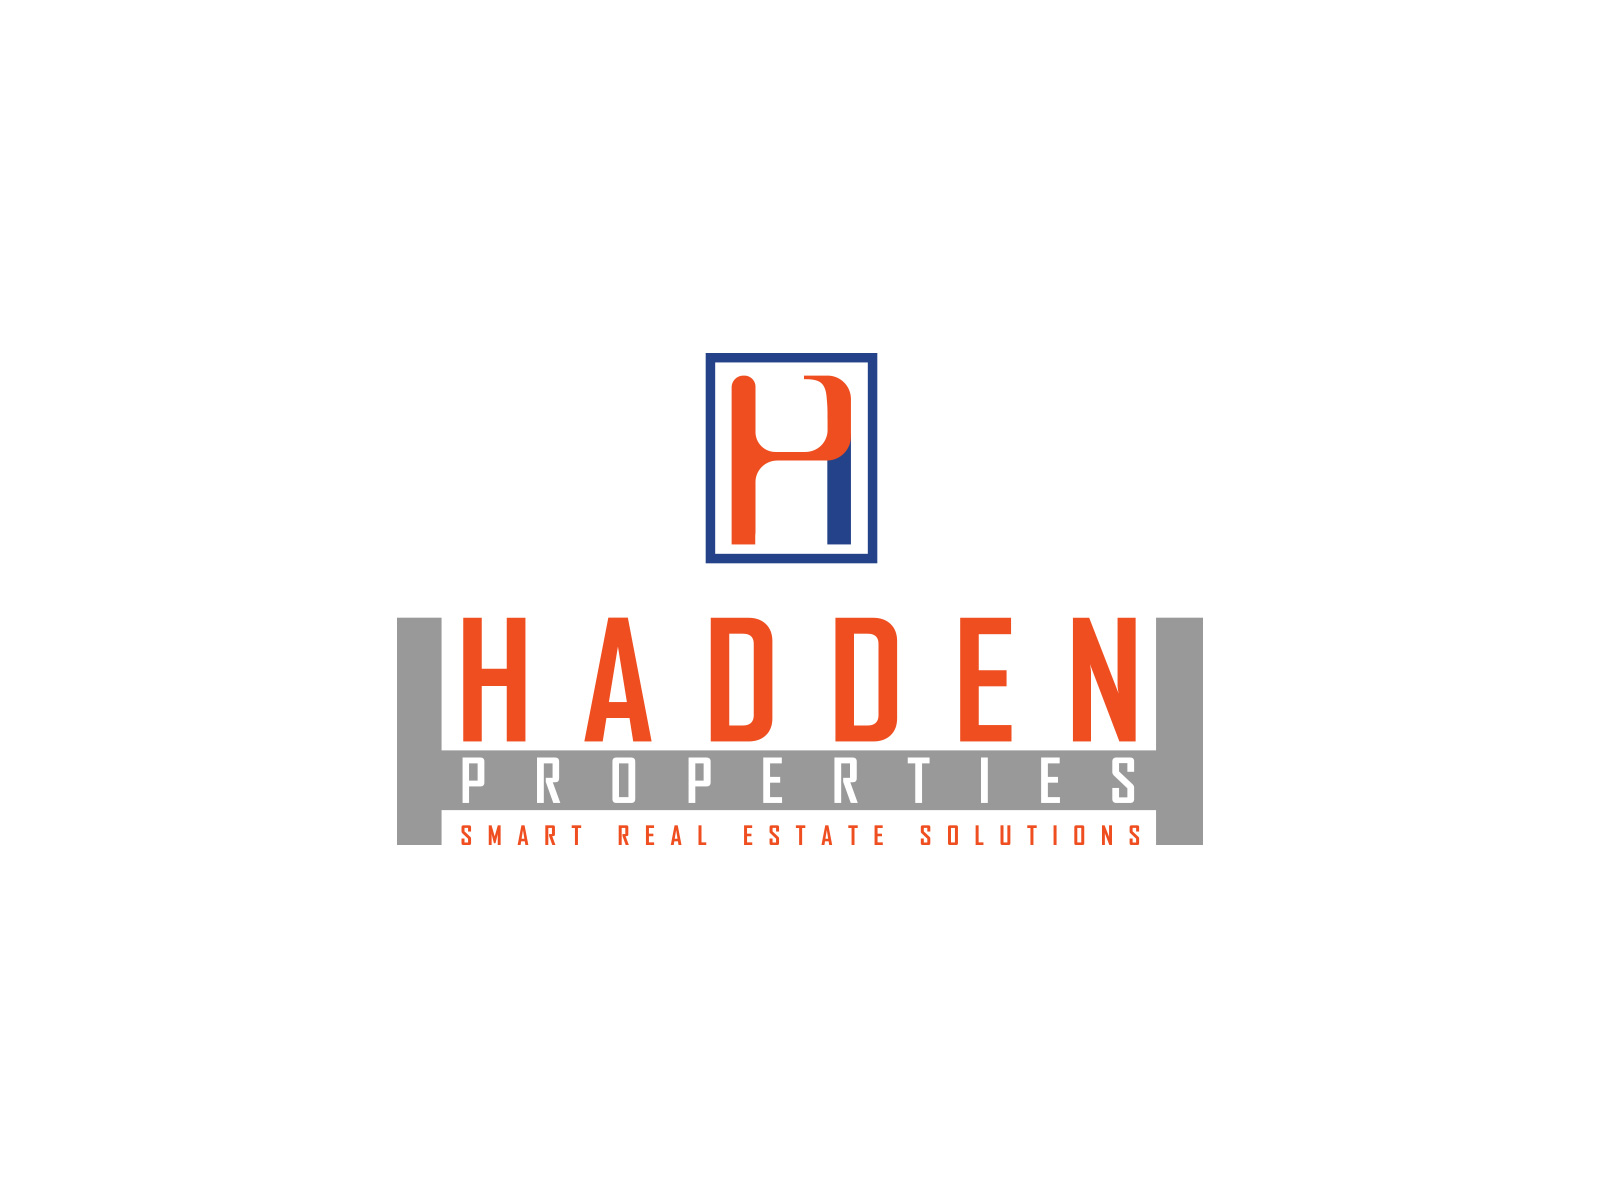 Logo Design by olii - Entry No. 181 in the Logo Design Contest Artistic Logo Design for Hadden Properties.